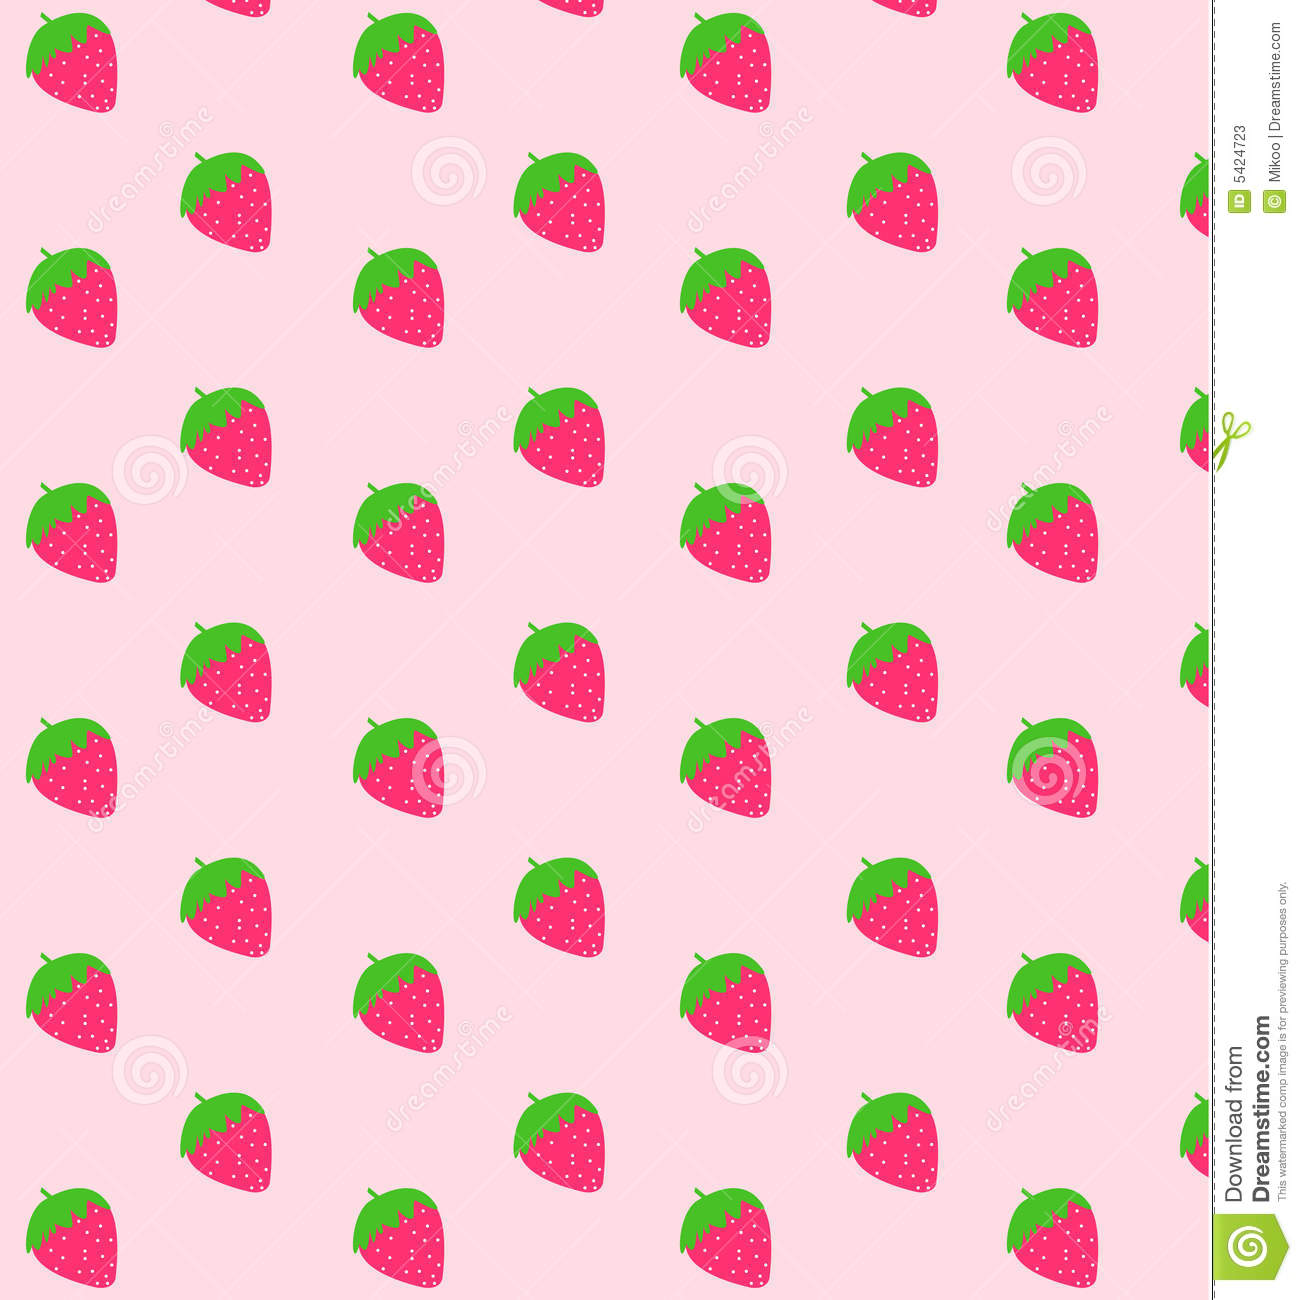 More similar stock images of ` Strawberry background `